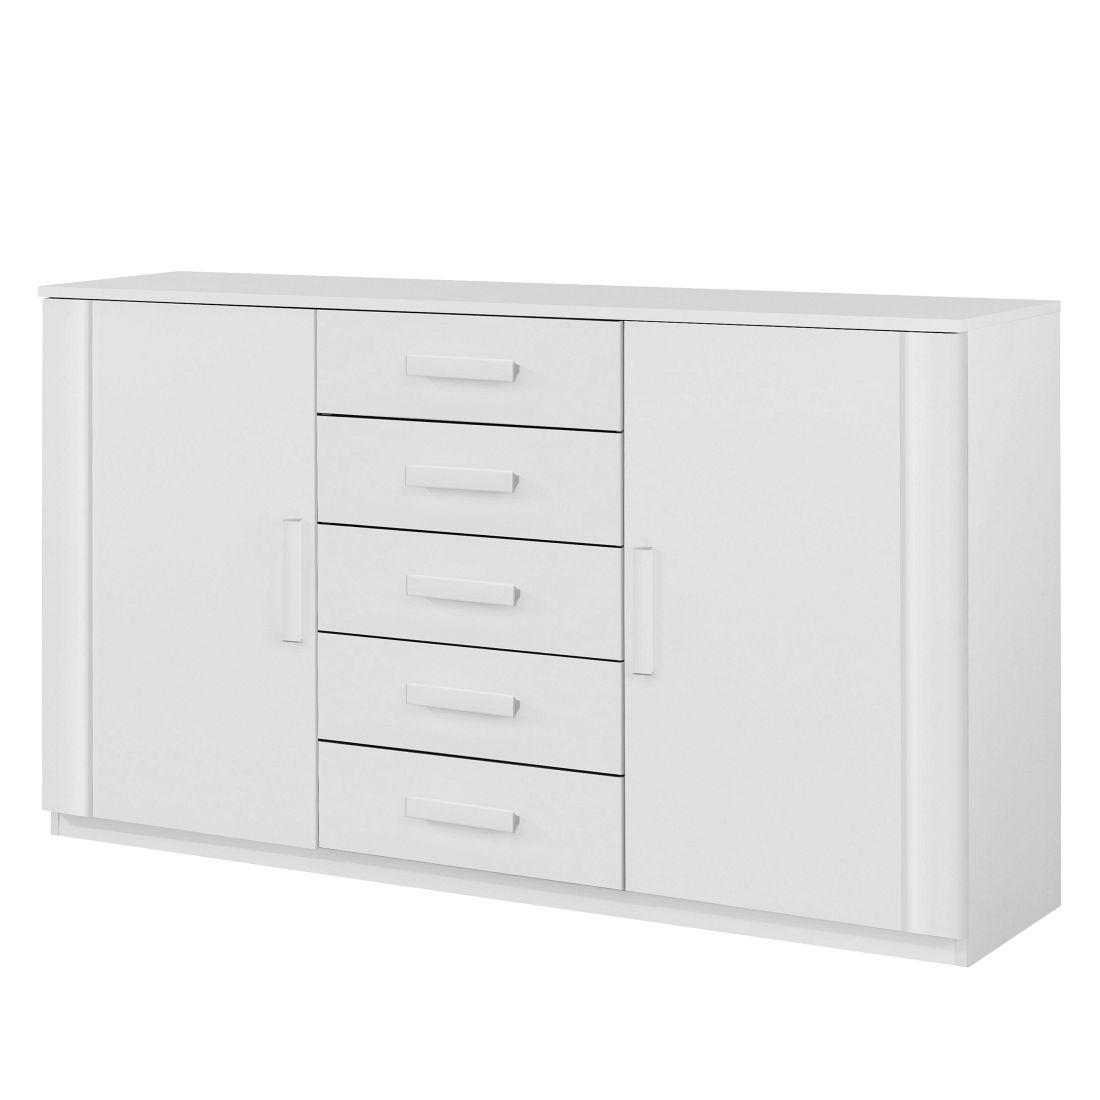 Commode Utrecht III - Blanc alpin, Rauch Packs